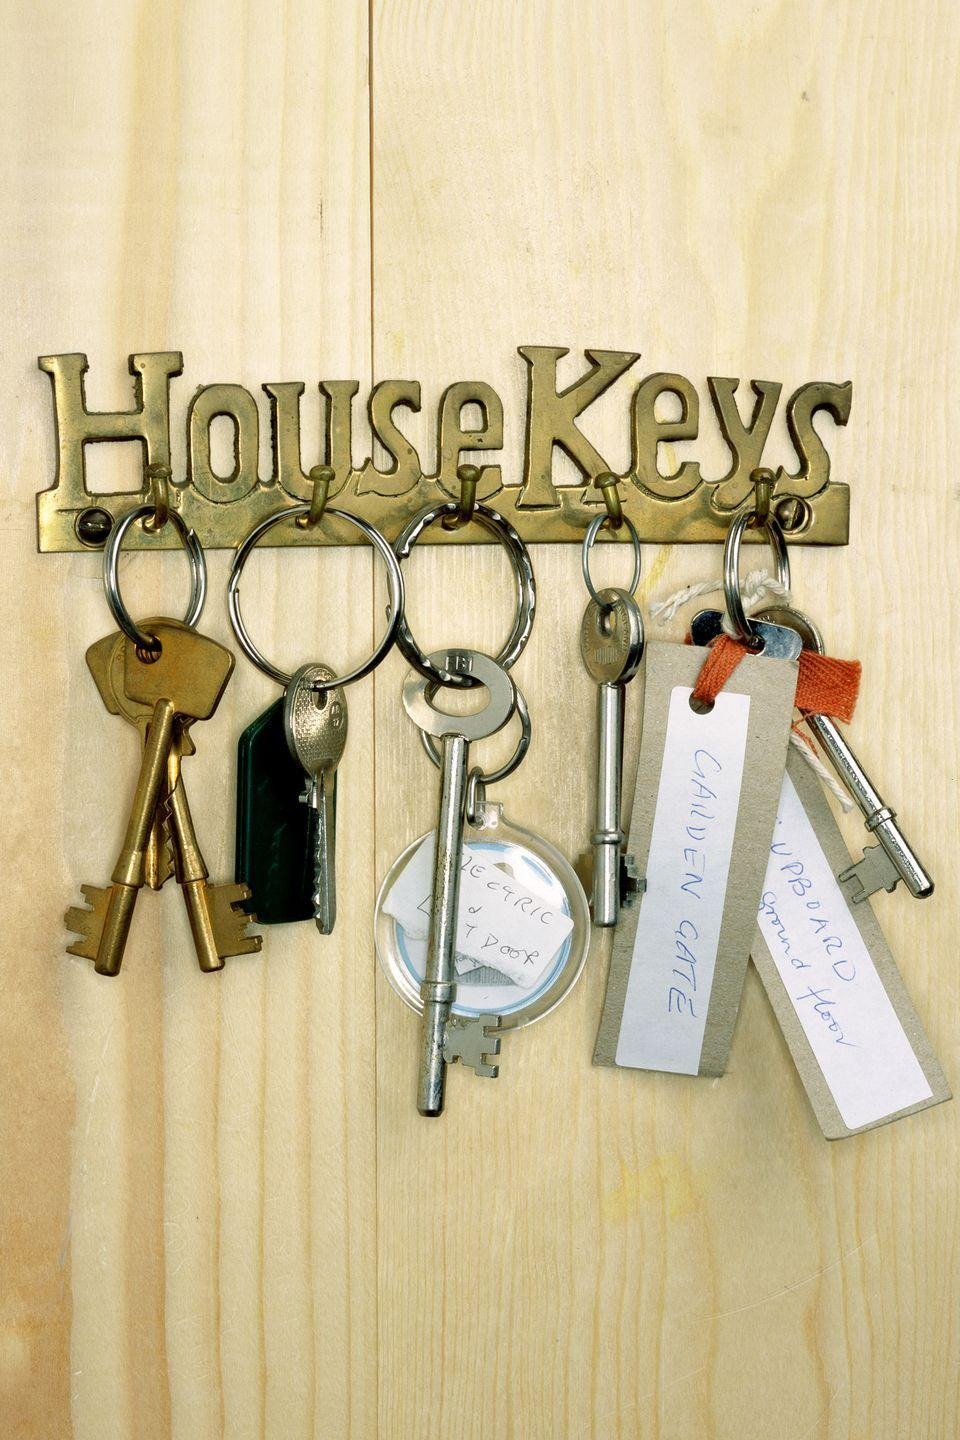 """<p>Make decorative keys that clearly stand out from one another. Example: you could use stars-and-stripes for the <a href=""""https://www.womansday.com/home/organizing-cleaning/tips/a4055/a-quicker-way-to-clean-house-83178/"""" rel=""""nofollow noopener"""" target=""""_blank"""" data-ylk=""""slk:house"""" class=""""link rapid-noclick-resp"""">house</a>, flowers for the garden shed, and a psychedelic pattern for your office at work.</p><p><strong><a class=""""link rapid-noclick-resp"""" href=""""https://www.amazon.com/Uniclife-Plastic-Window-Assorted-Colors/dp/B01G8L4T74/ref=pd_day0_21_4/138-2633406-5587159?_encoding=UTF8&pd_rd_i=B01G8L4T74&pd_rd_r=57375198-f012-49cf-aa75-cb7ead6cd6e4&pd_rd_w=gHA3X&pd_rd_wg=vOspm&pf_rd_p=ecf748b5-e796-4a0d-9a46-406a973ba8da&pf_rd_r=EM09NMW7BDJ4660QV1F5&psc=1&refRID=EM09NMW7BDJ4660QV1F5&tag=syn-yahoo-20&ascsubtag=%5Bartid%7C10070.g.3310%5Bsrc%7Cyahoo-us"""" rel=""""nofollow noopener"""" target=""""_blank"""" data-ylk=""""slk:SHOP KEY LABELS"""">SHOP KEY LABELS</a></strong></p>"""